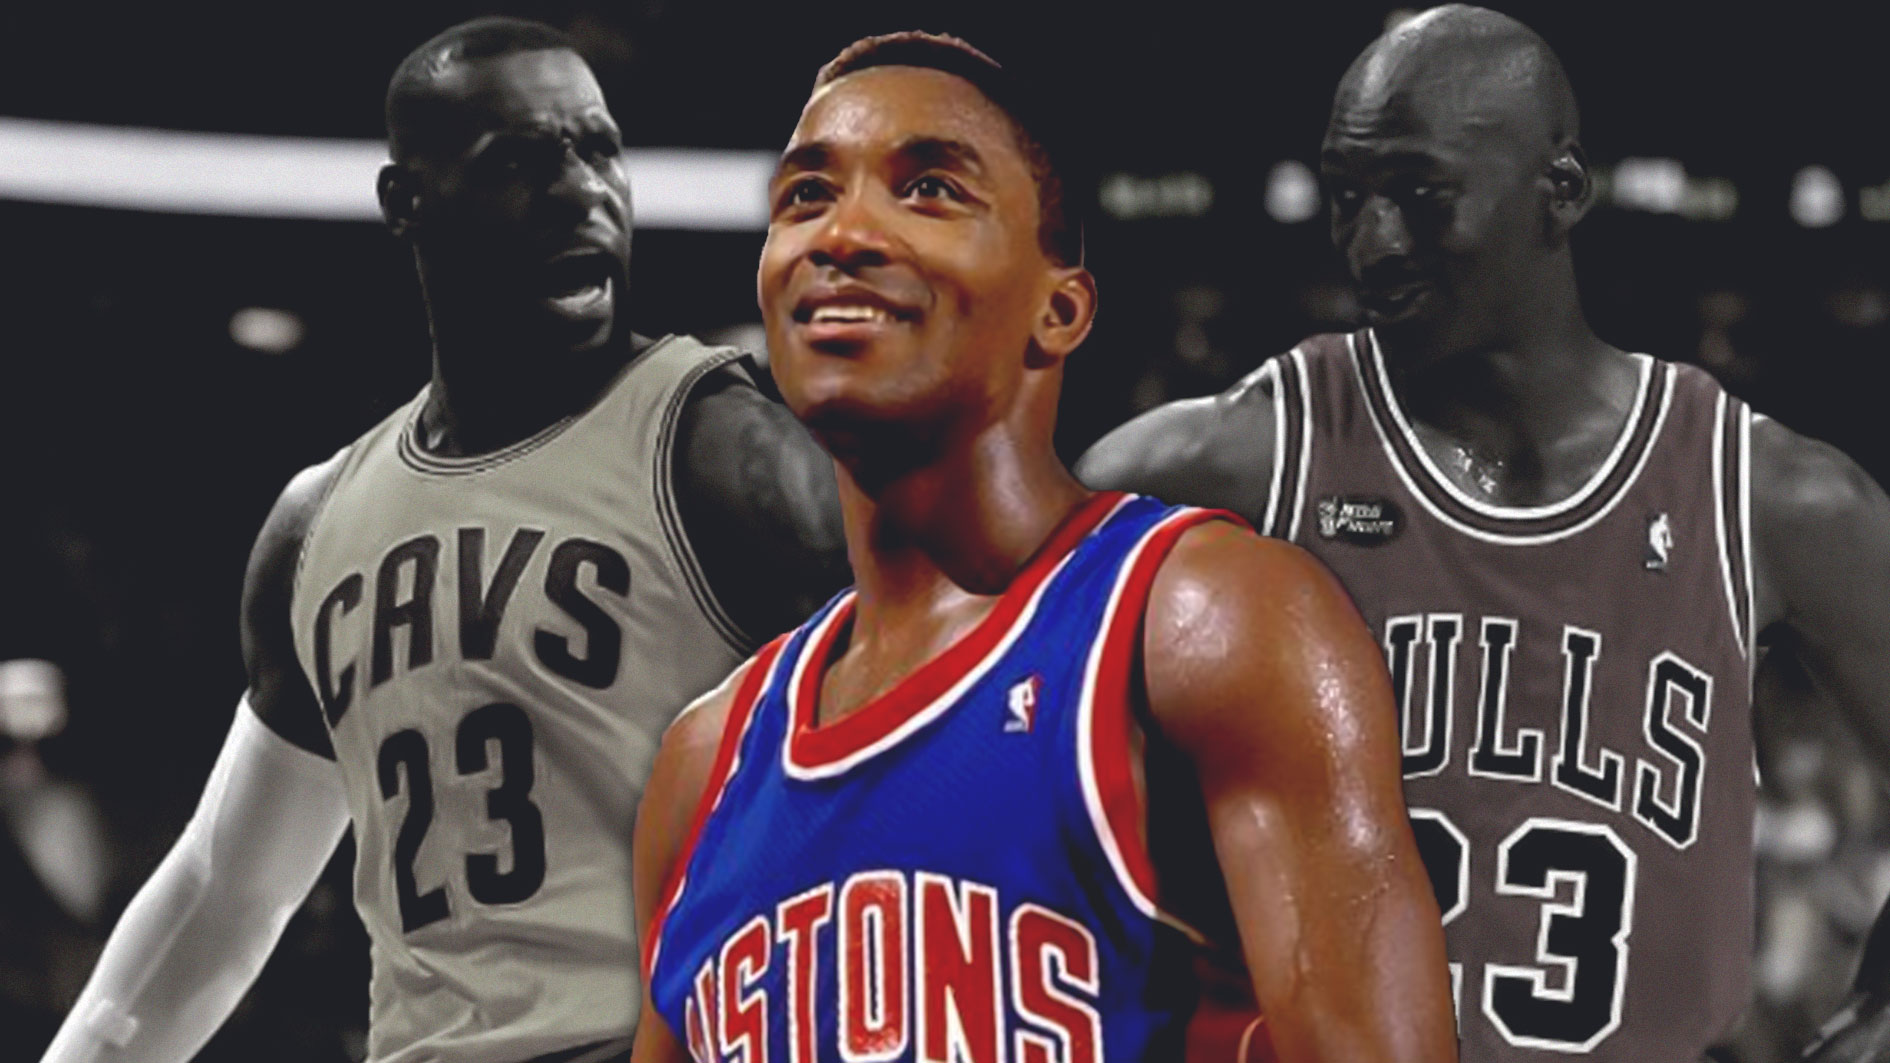 isiah thomas, lebron james, michael jordan